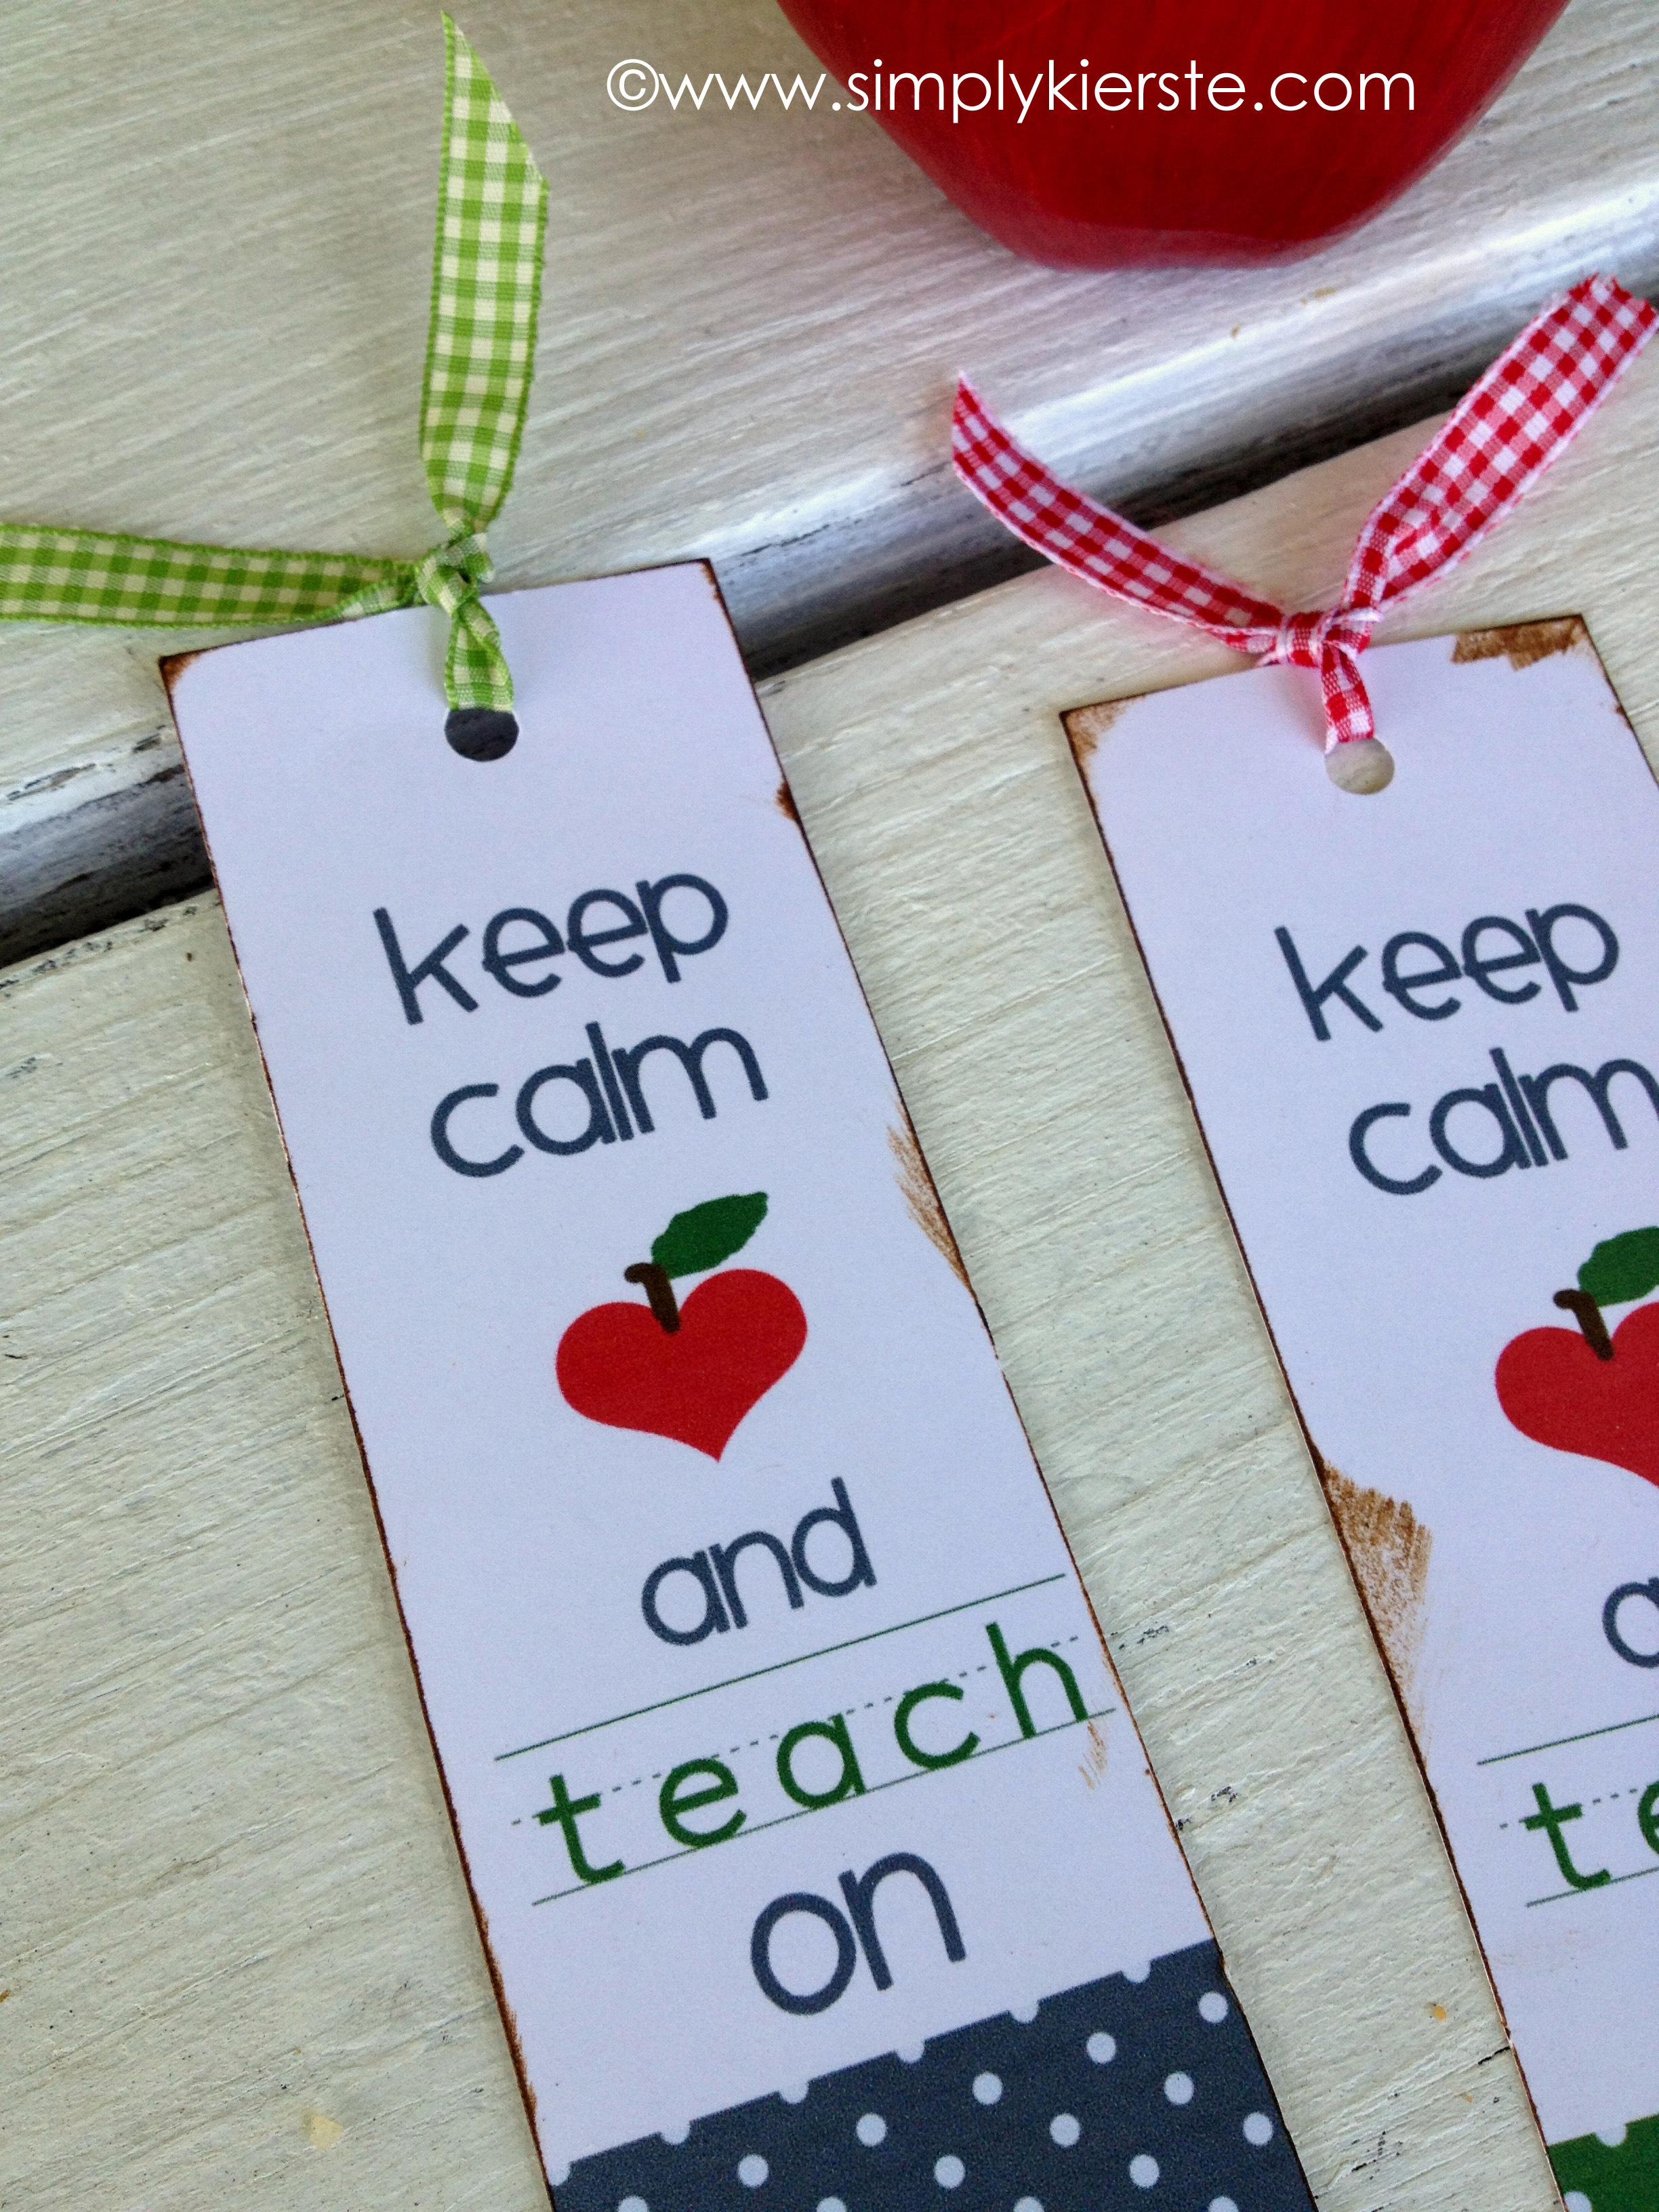 keep calm and carry onteacher bookmarks }| simplykierste